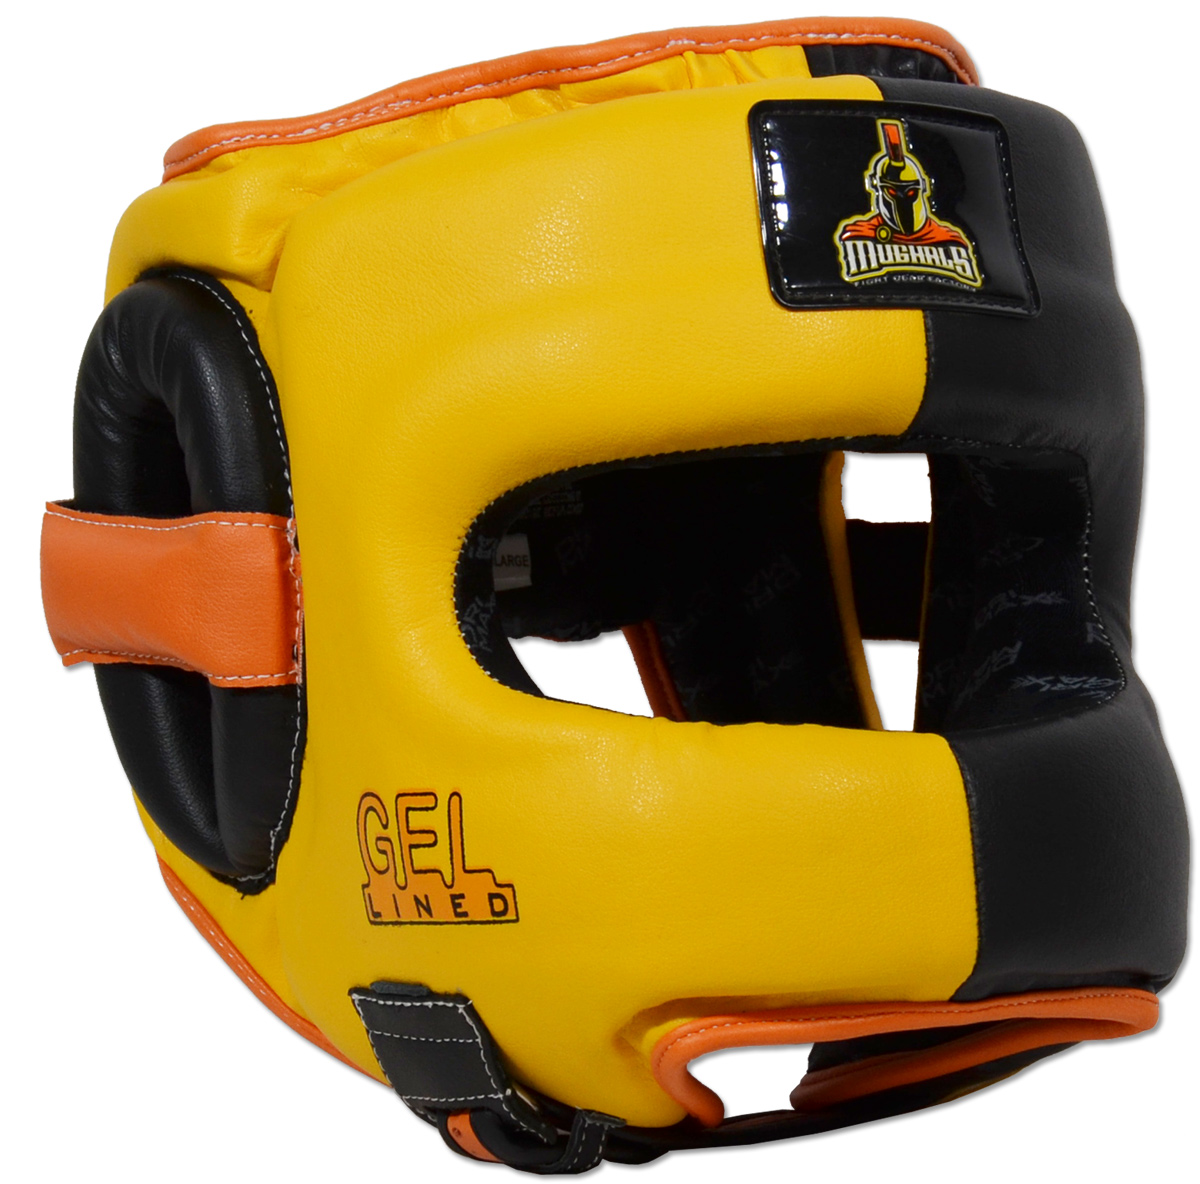 Deluxe Full Face GelLined Sparring Headgear